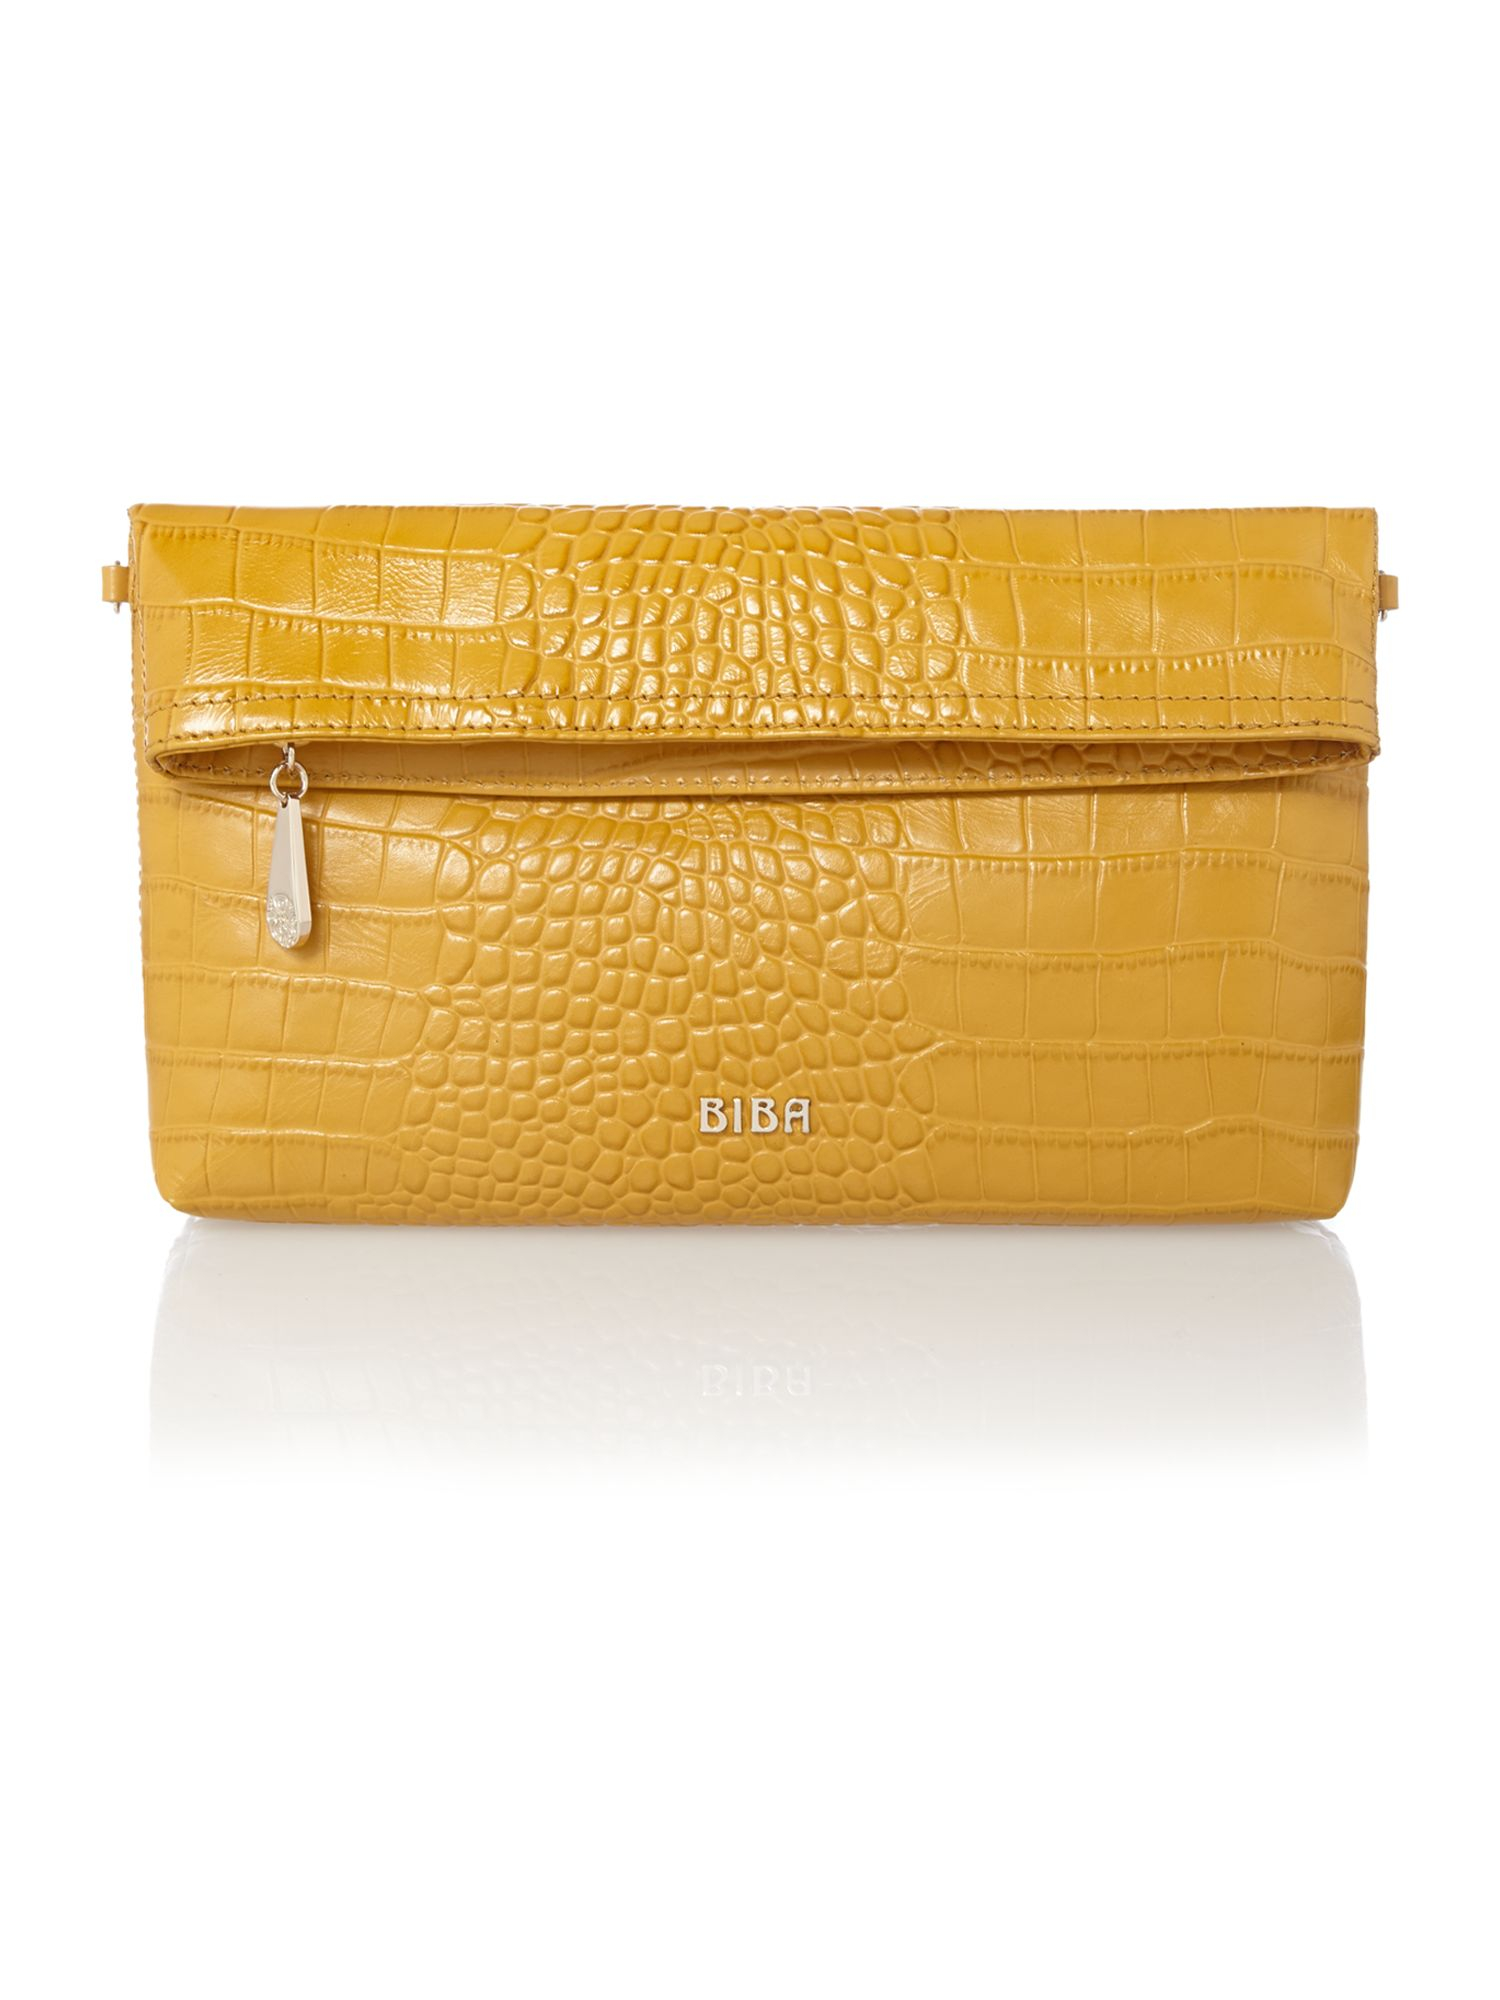 Biba Ferrara Foldover Clutch Bag in Yellow | Lyst